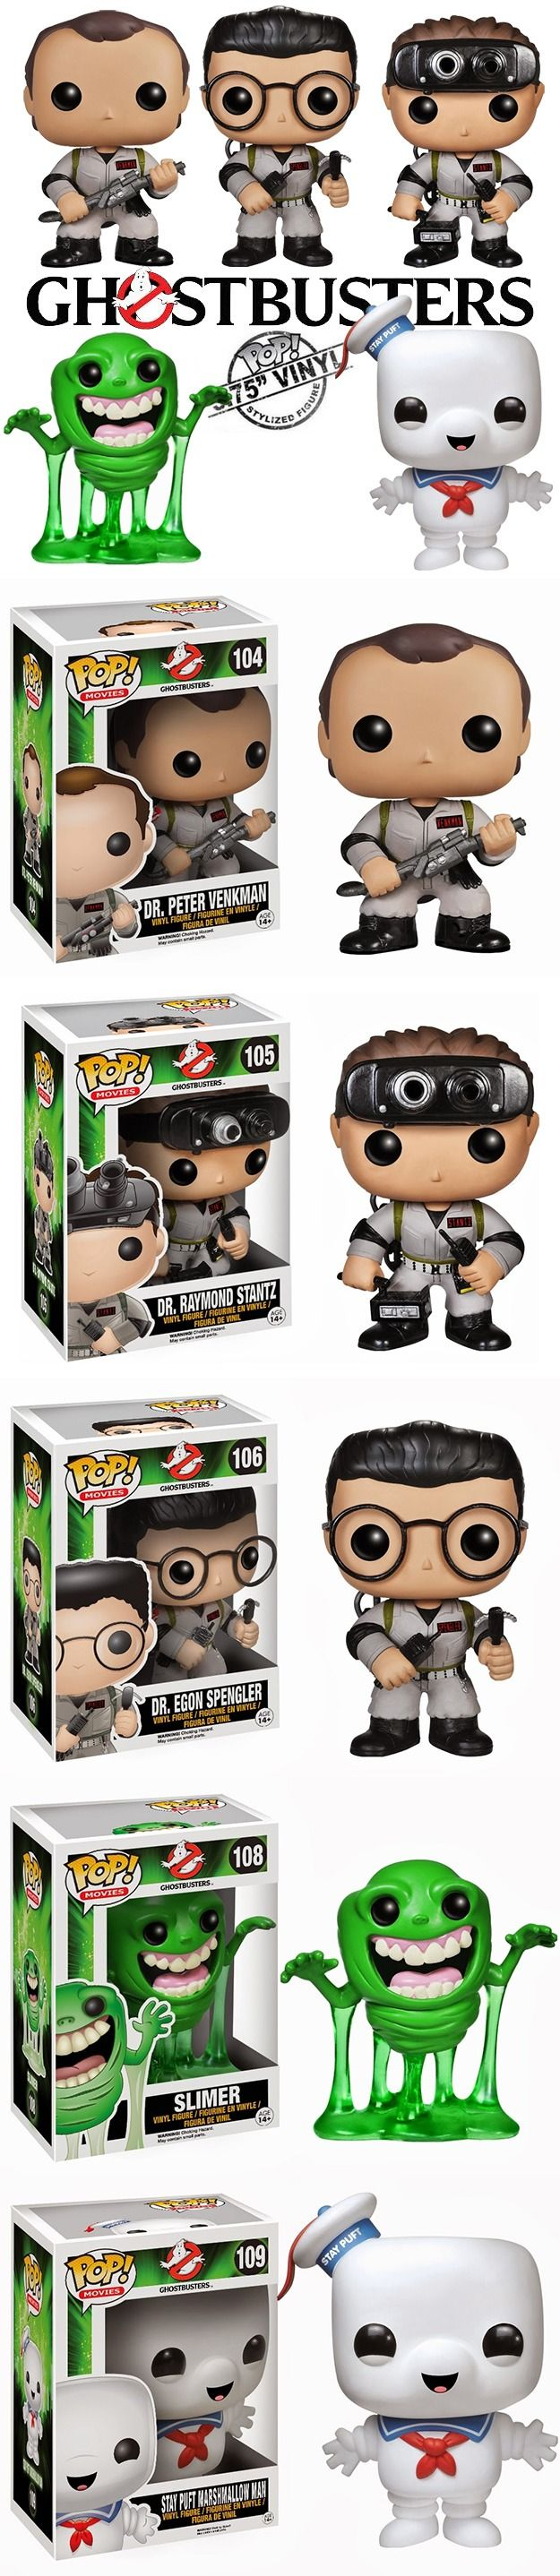 Ghostbusters Pop! Vinyl Figures